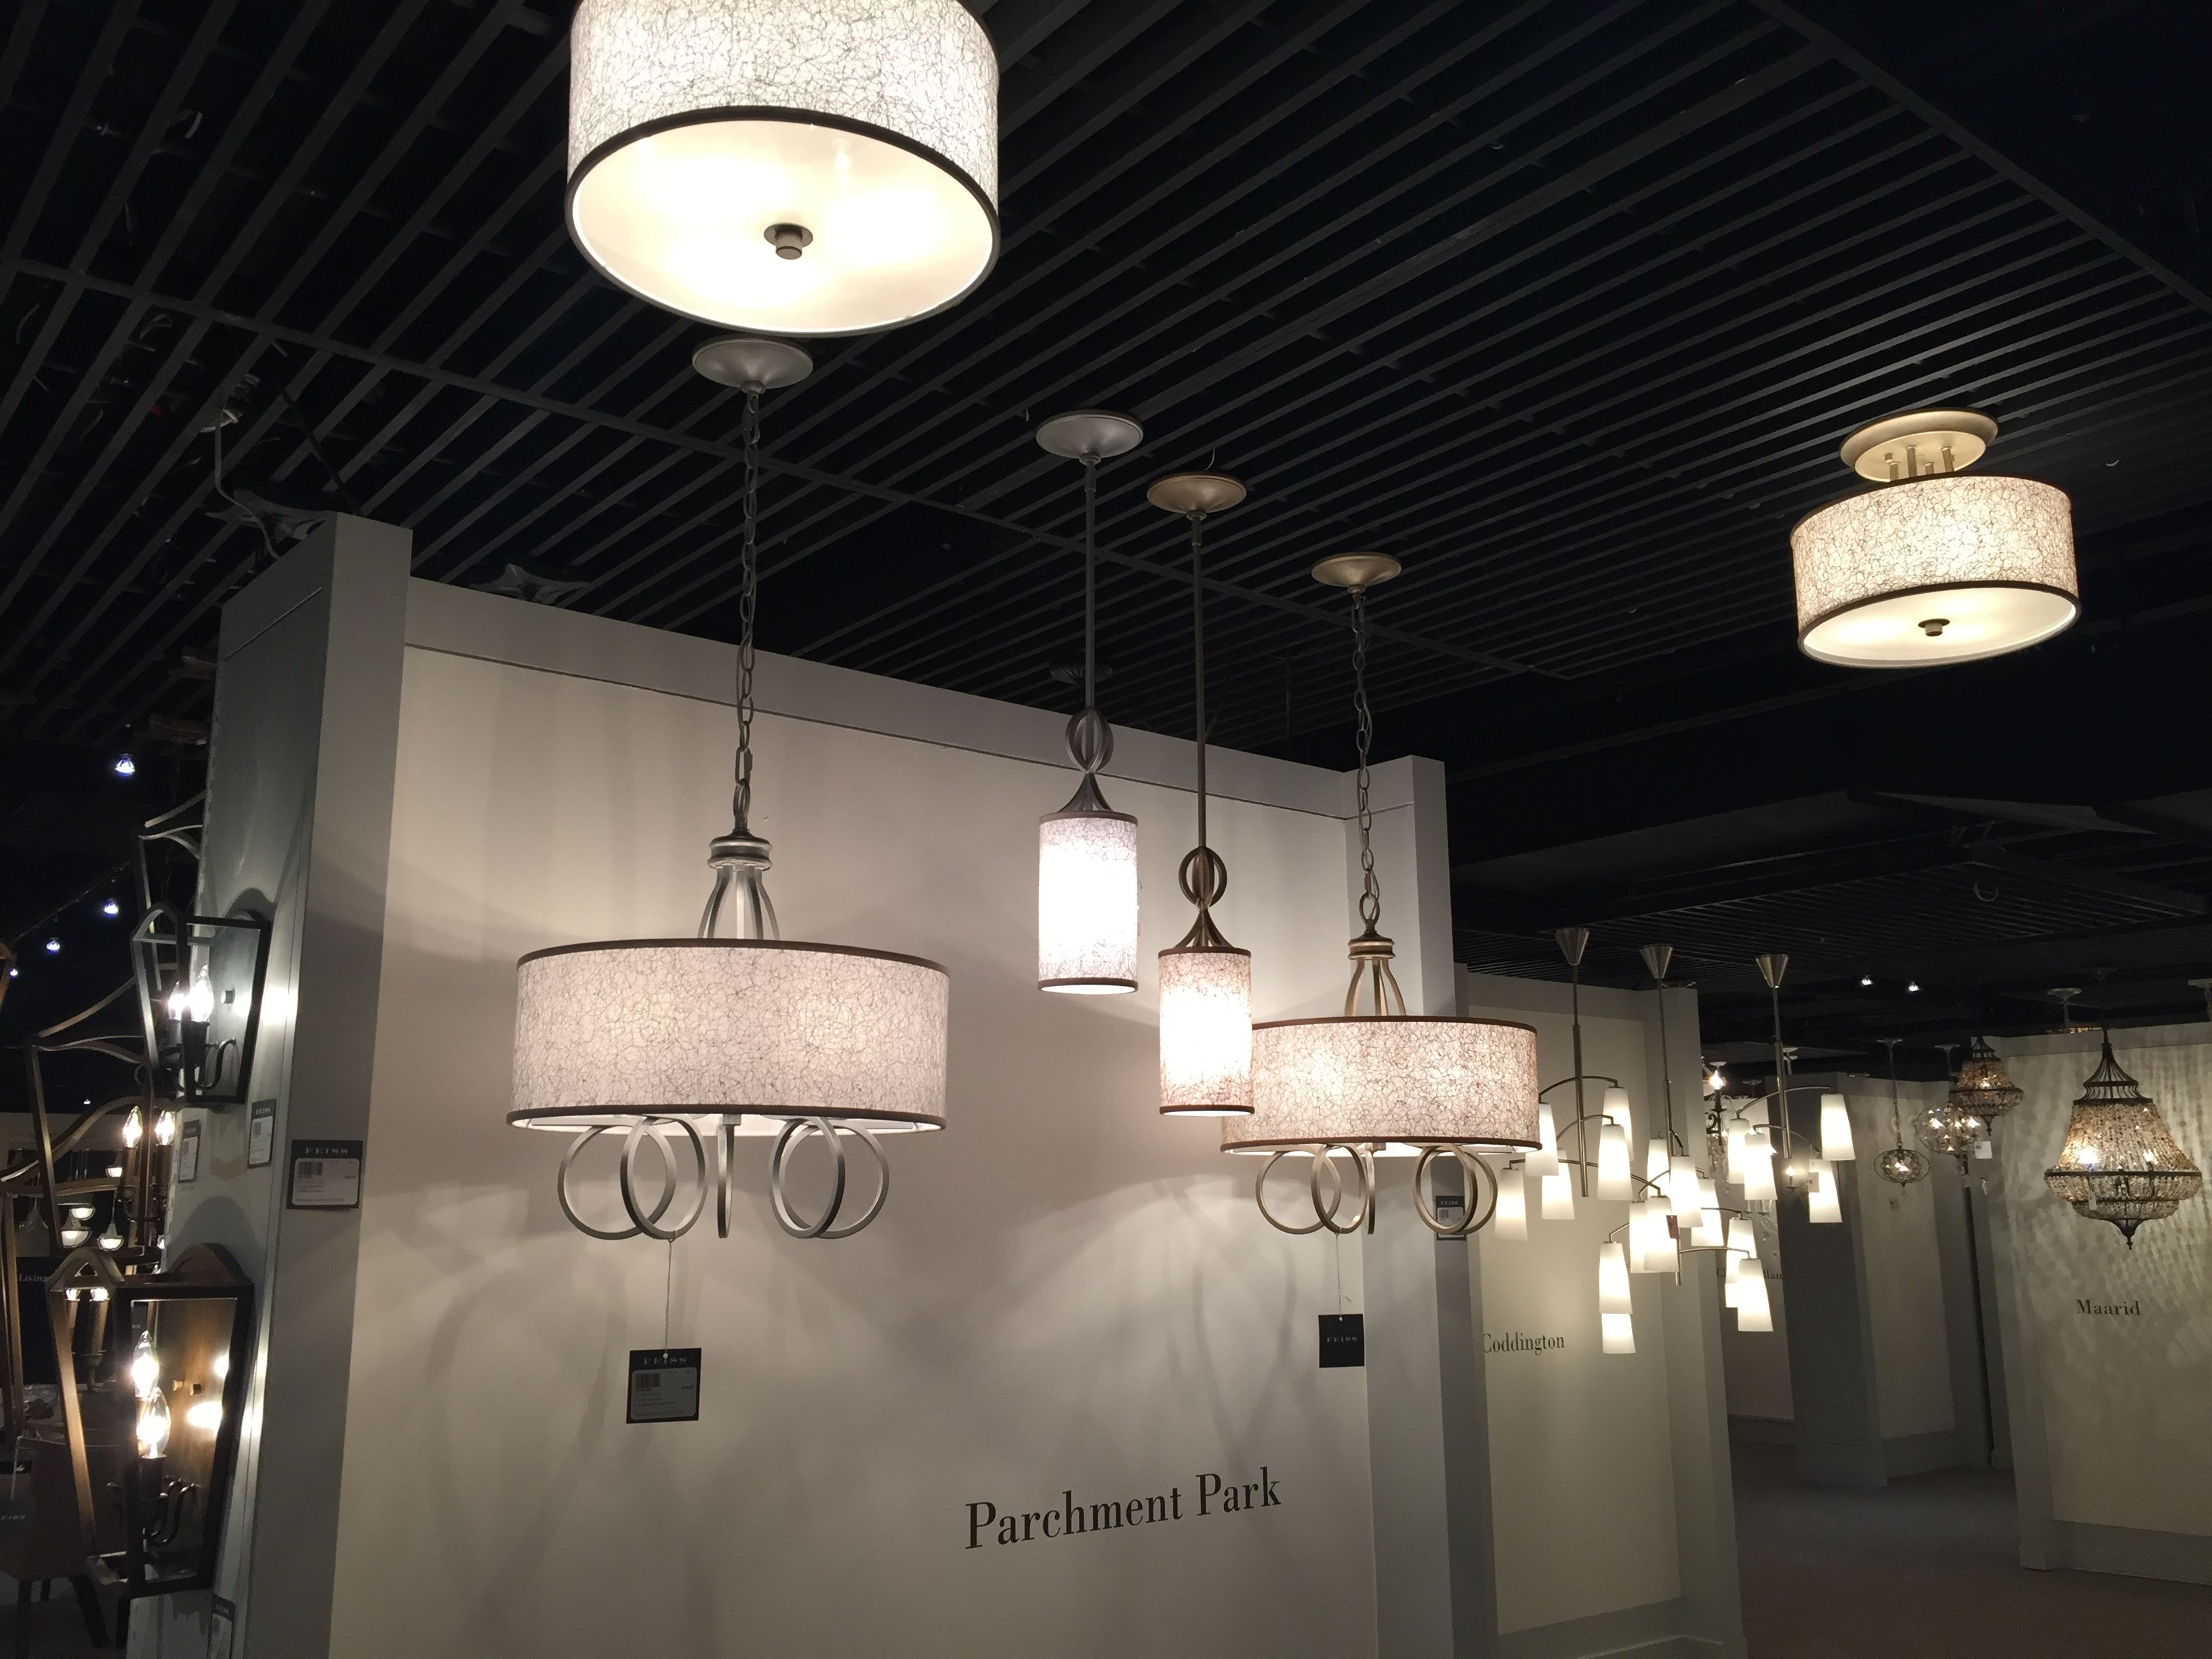 Feiss parchment park collection building off the trend of a feiss parchment park collection building off the trend of a chandelier within a drum shade the parchment park lighting collection by feiss delivers rich arubaitofo Choice Image